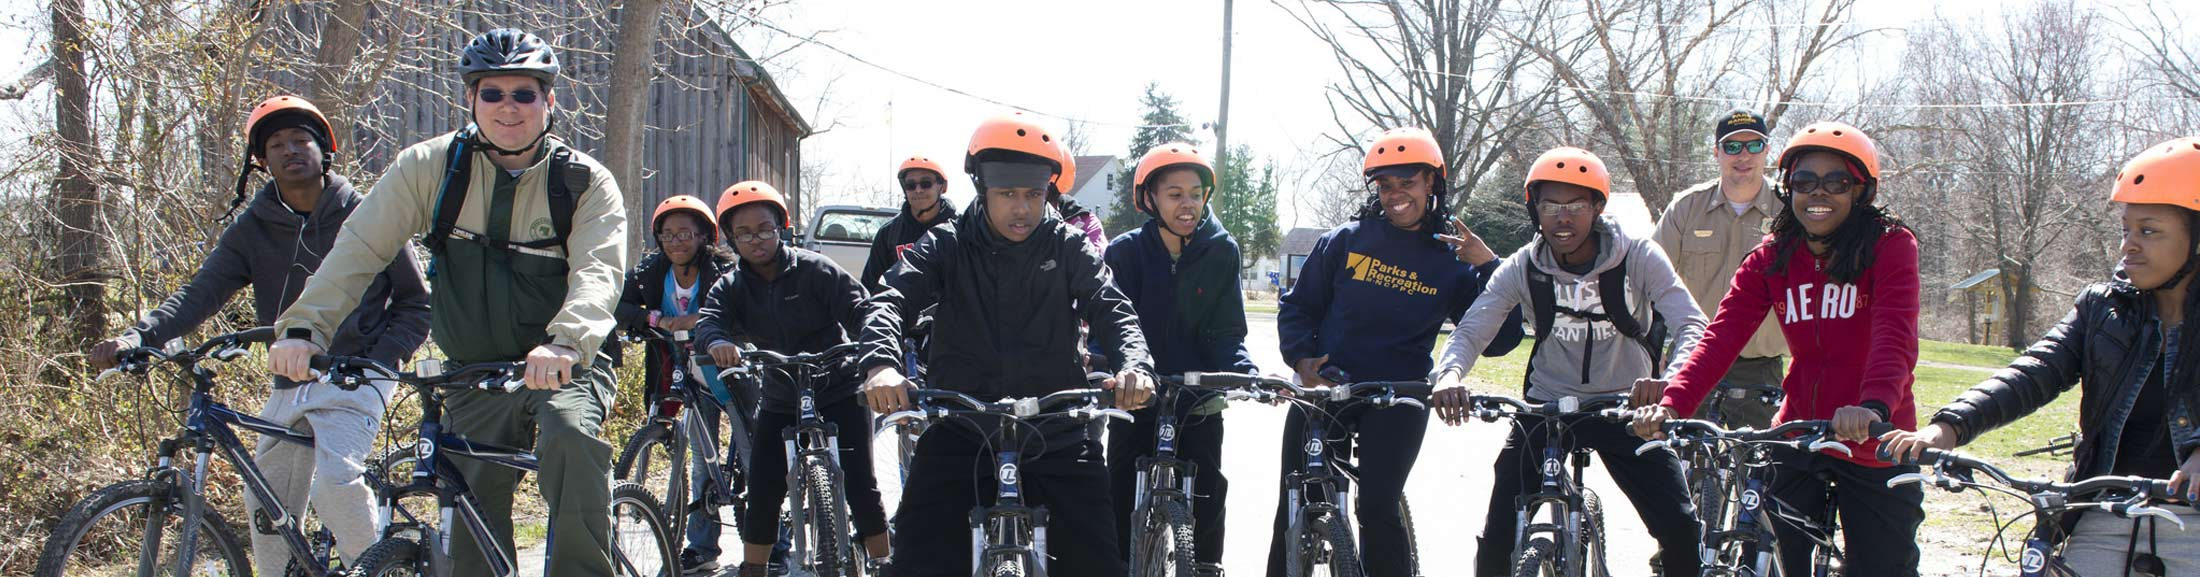 group of teens on a bike ride with a park ranger